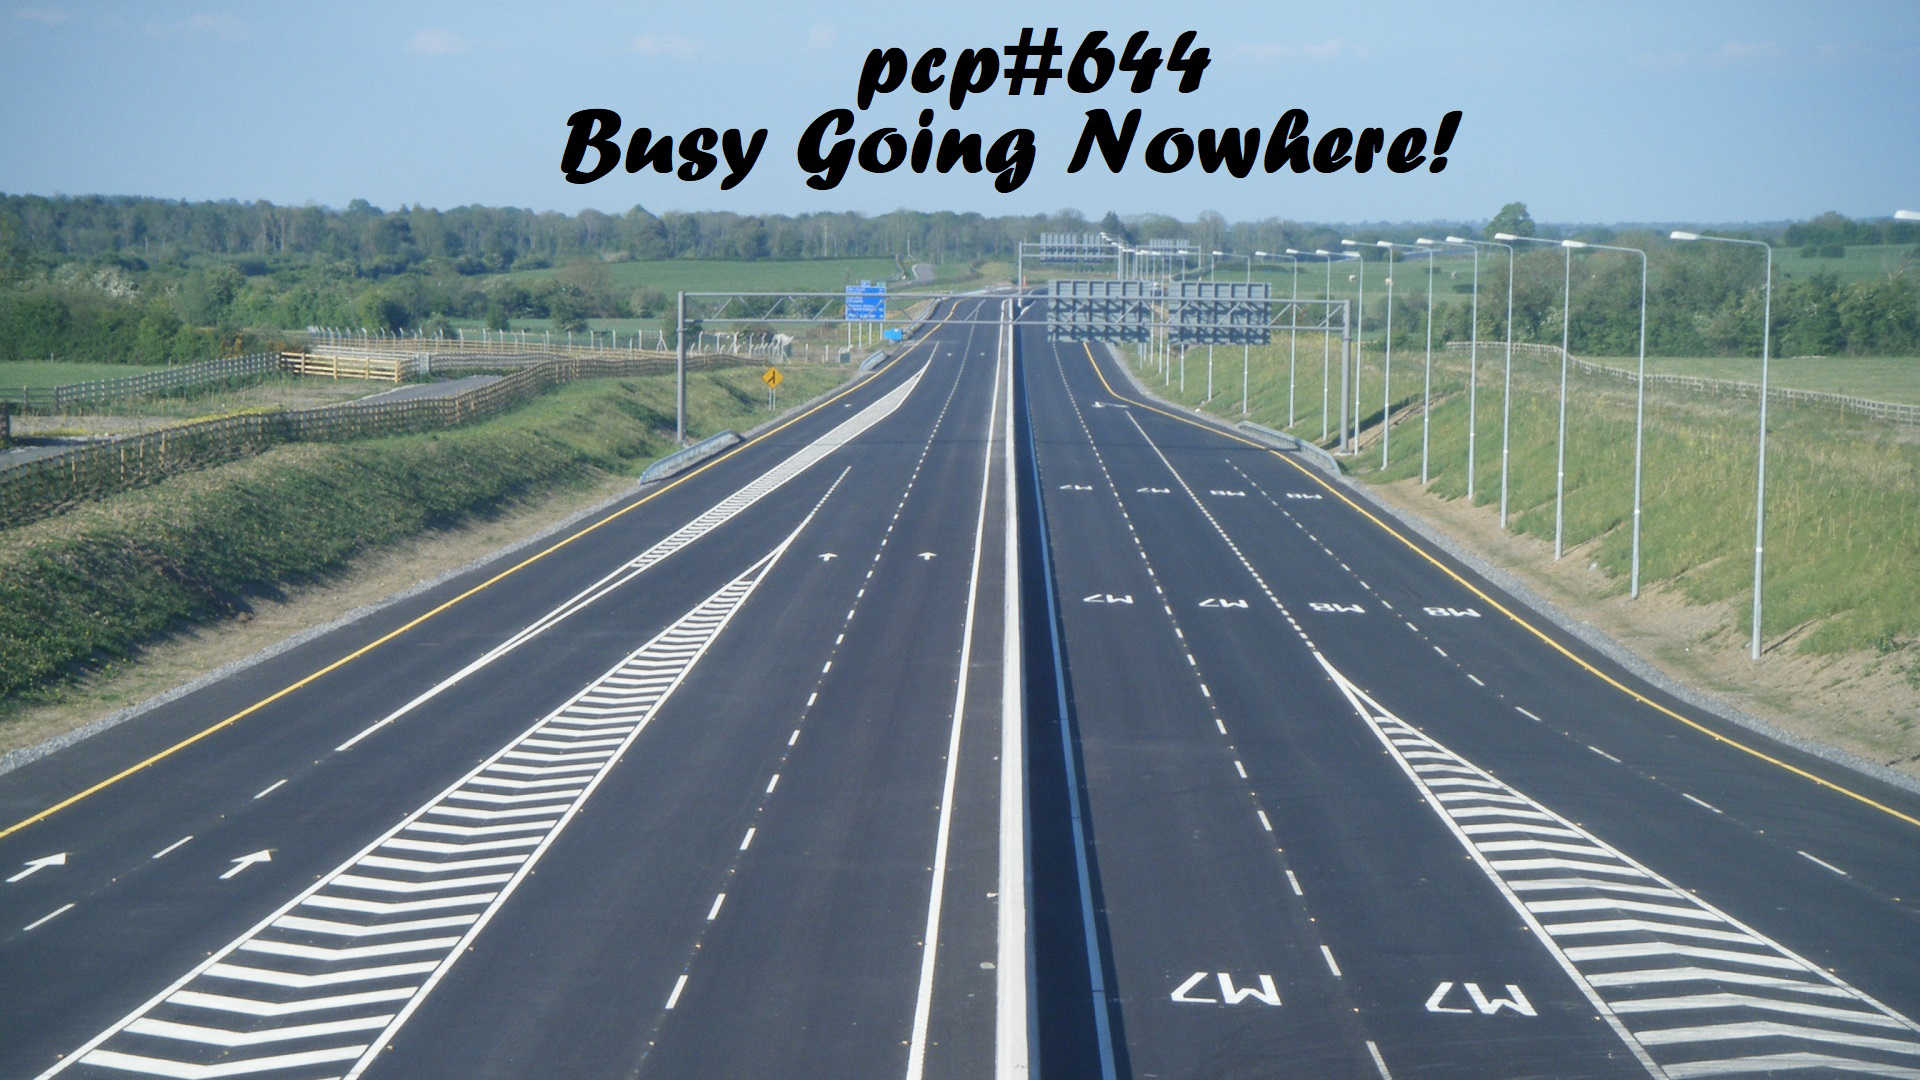 PCP#644... Busy Going Nowhere....